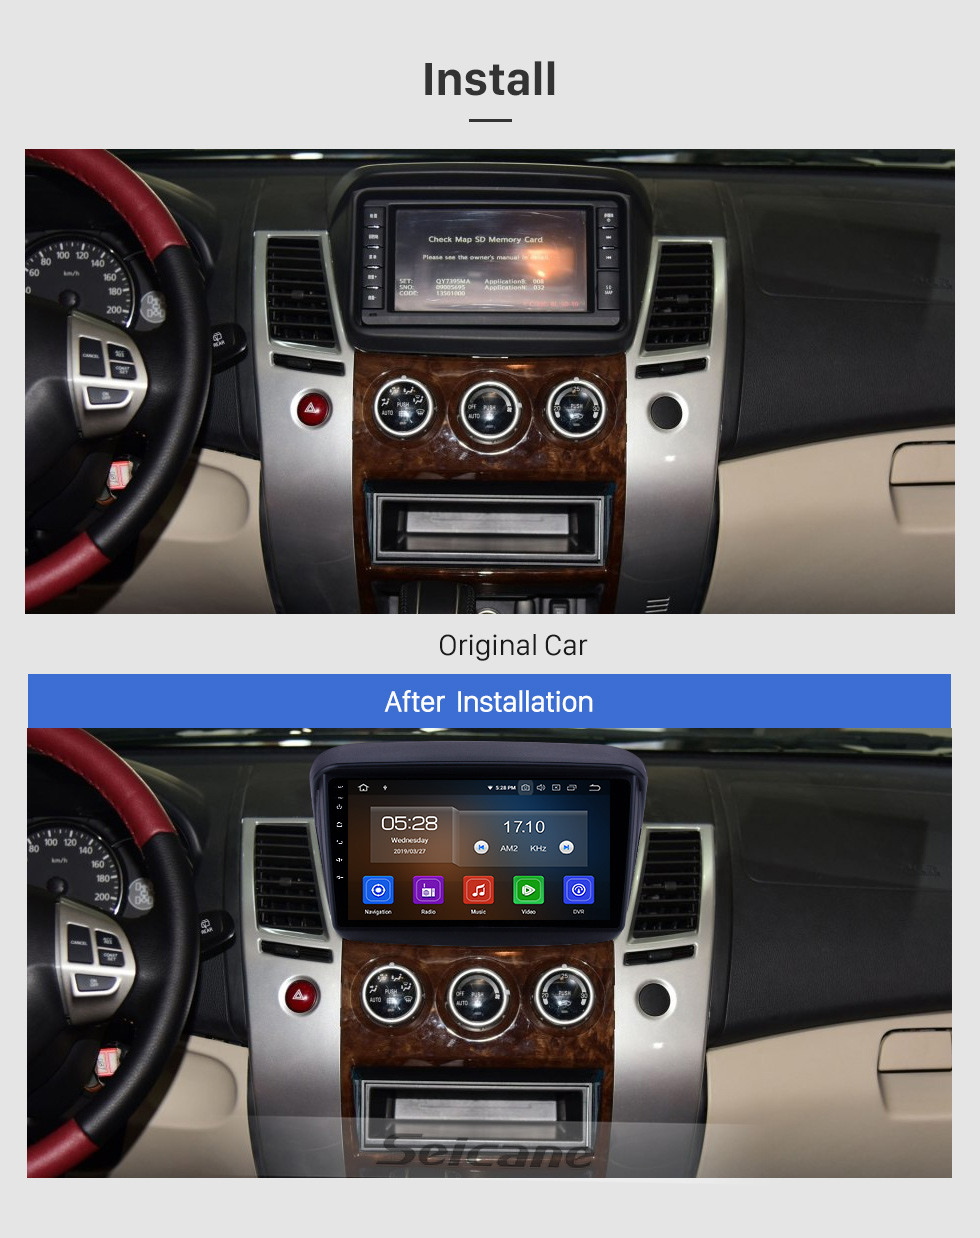 Seicane HD Touchscreen 2010 MITSUBISHI PAJERO Sport / L200 / 2006 + Triton / 2008 + PAJERO Sport2 Montero Sport / 2010 + Pajero Dakar / 2008 + Challenger Android 9.0 9 Zoll GPS Navigationsradio Bluetooth USB Carplay Musik AUX Unterstützung TPMS SWC OBD2 Digital T